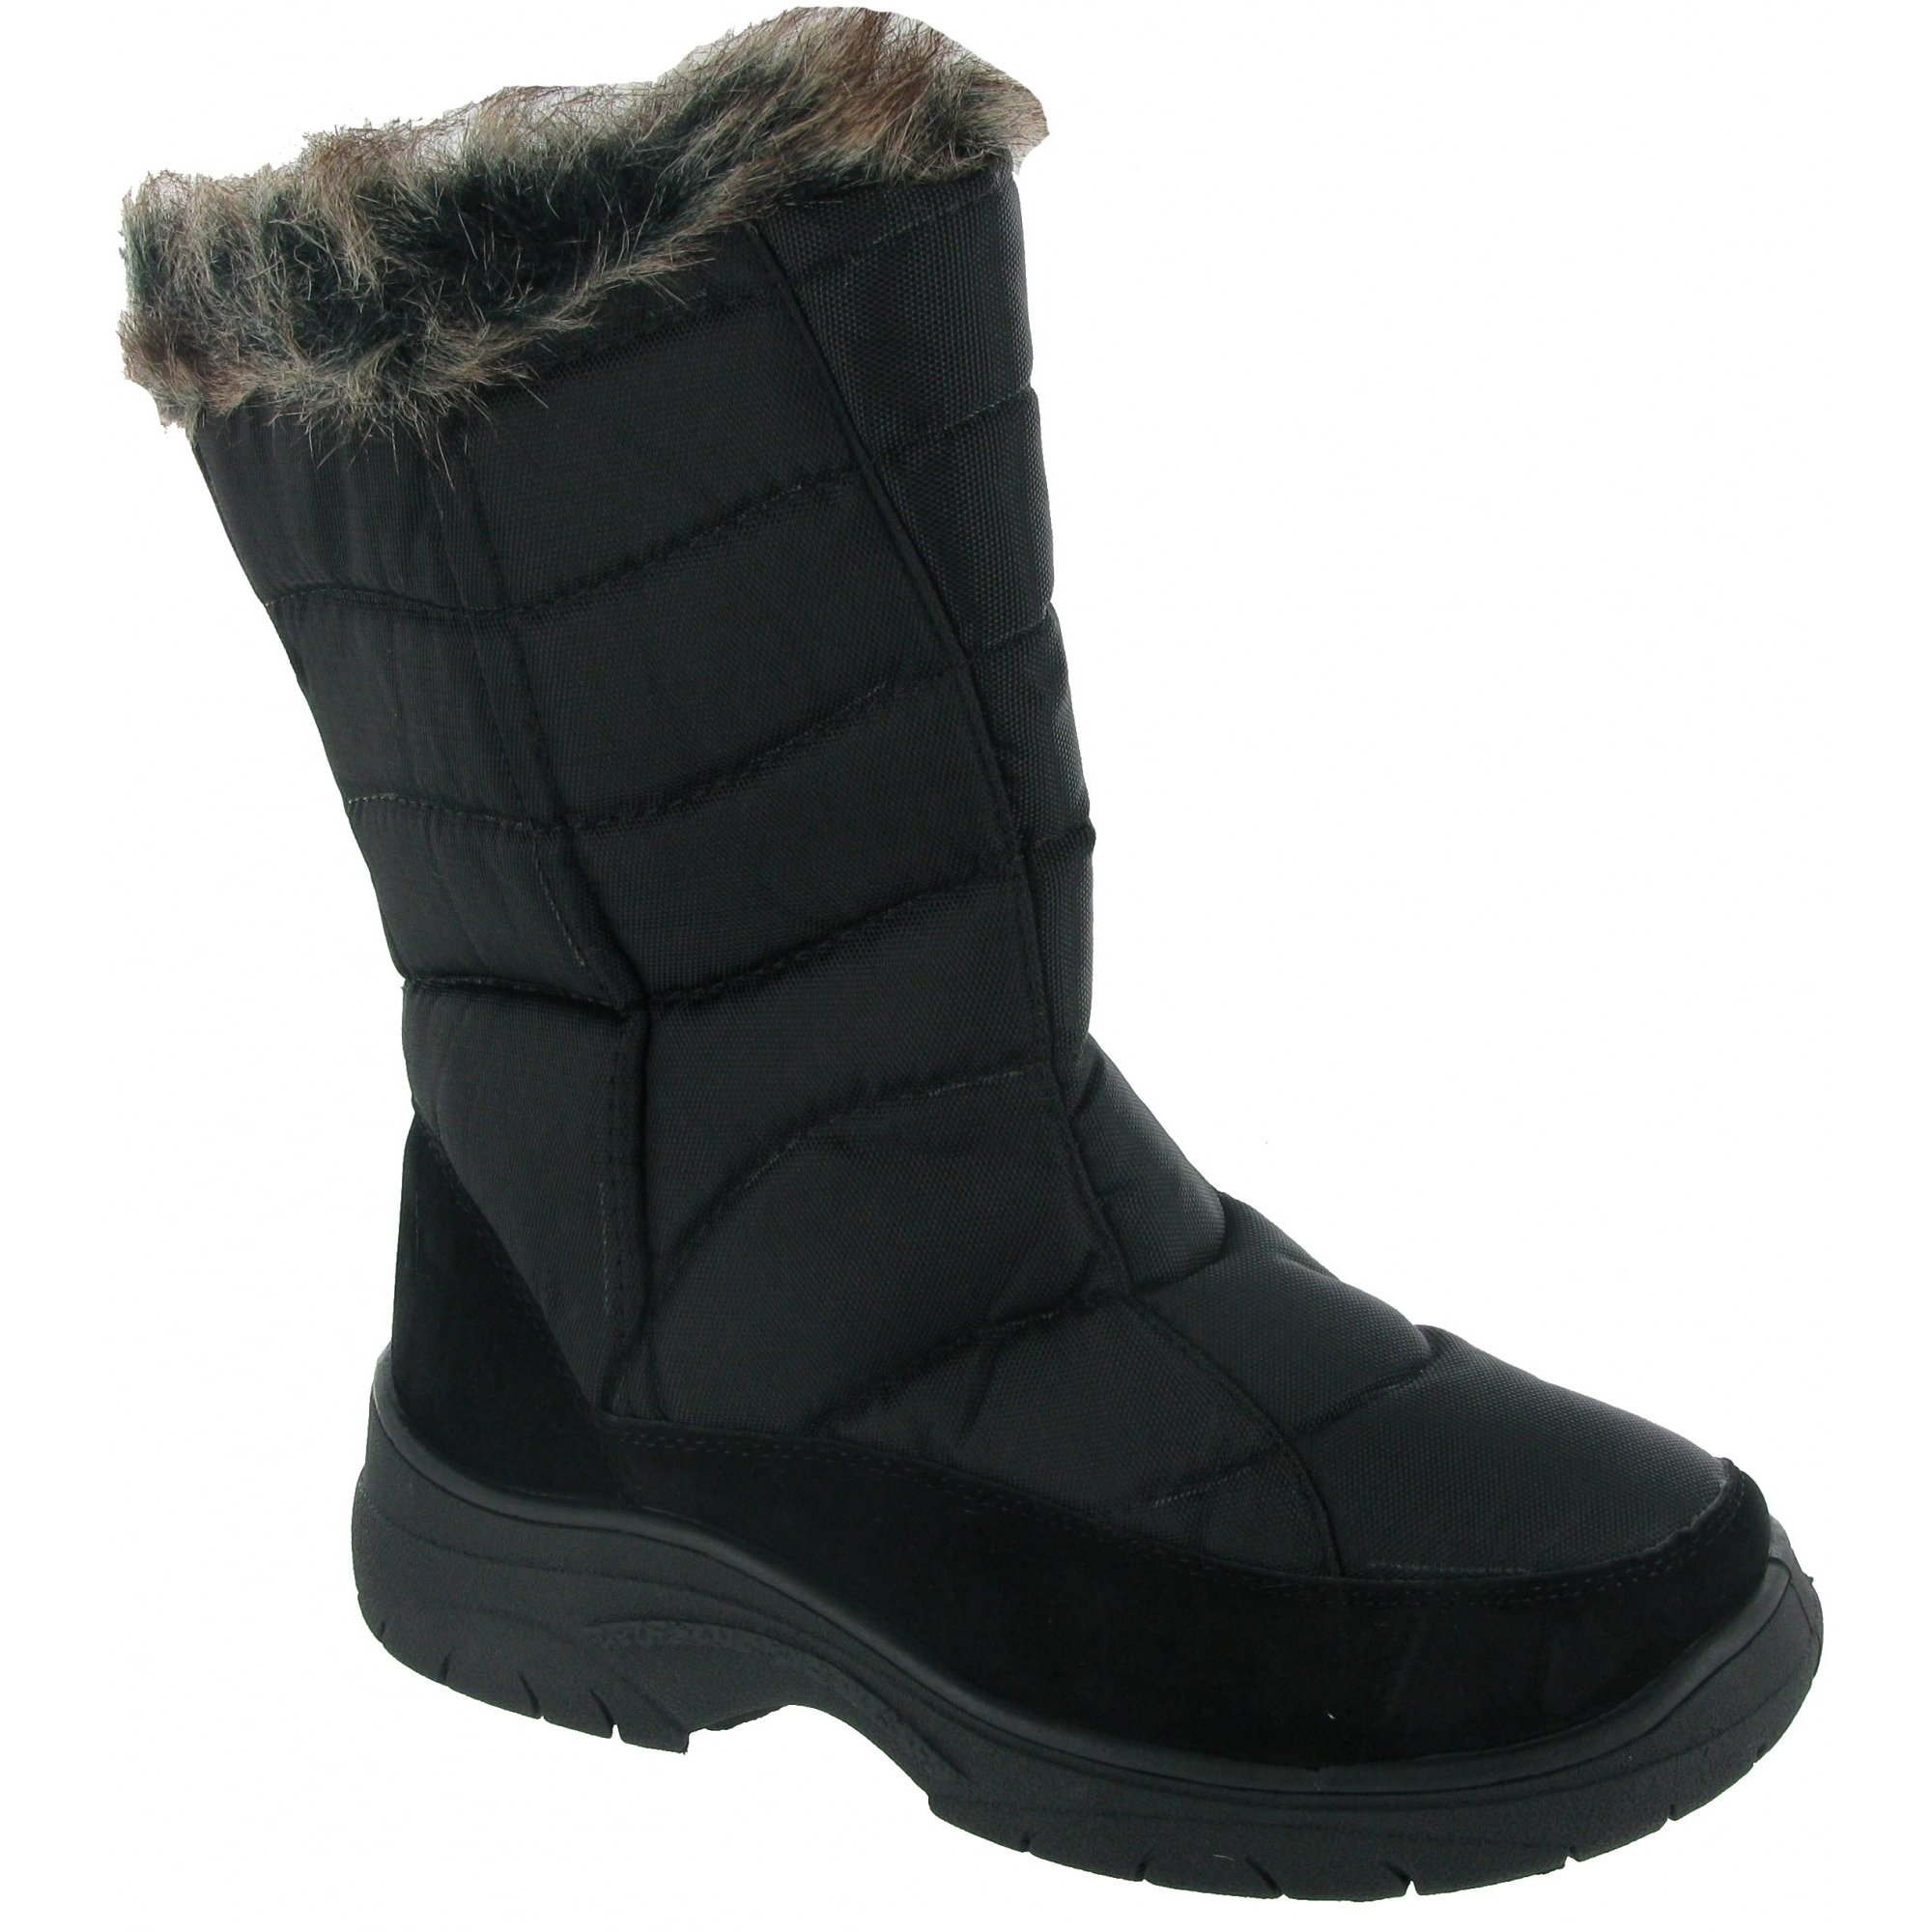 Womens Snow Boots Clearance 0mDWmD80